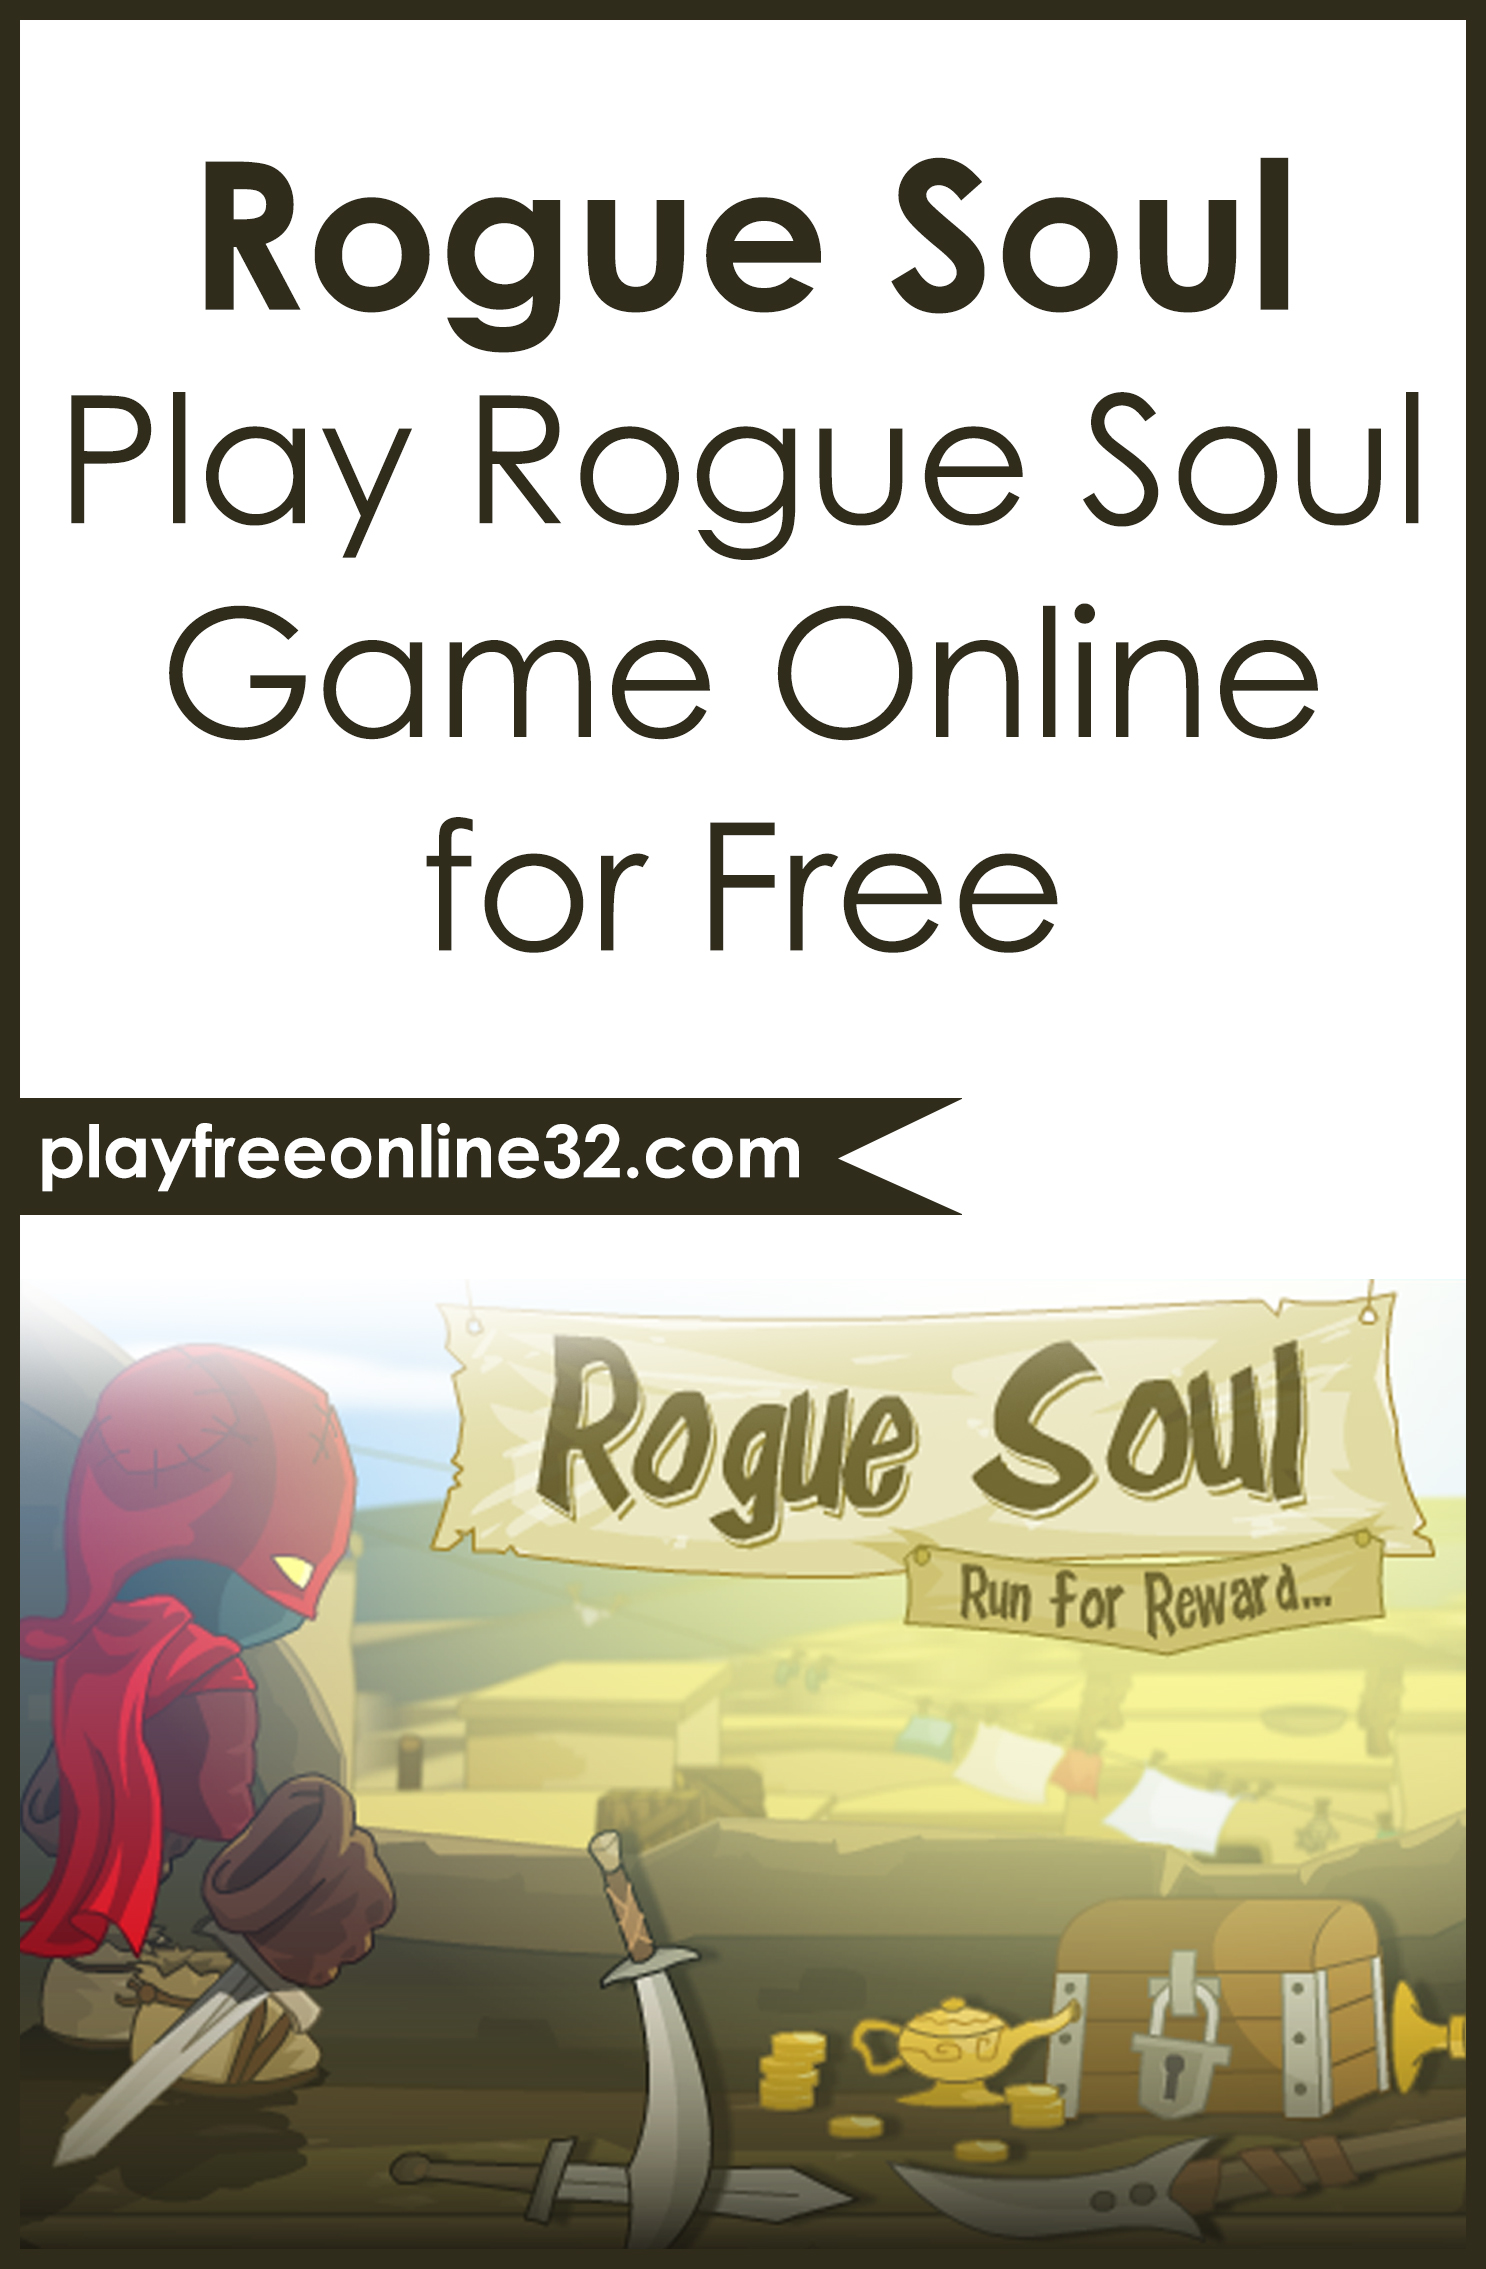 Rogue Soul • Play Rogue Soul Game Online for Free Pinterest